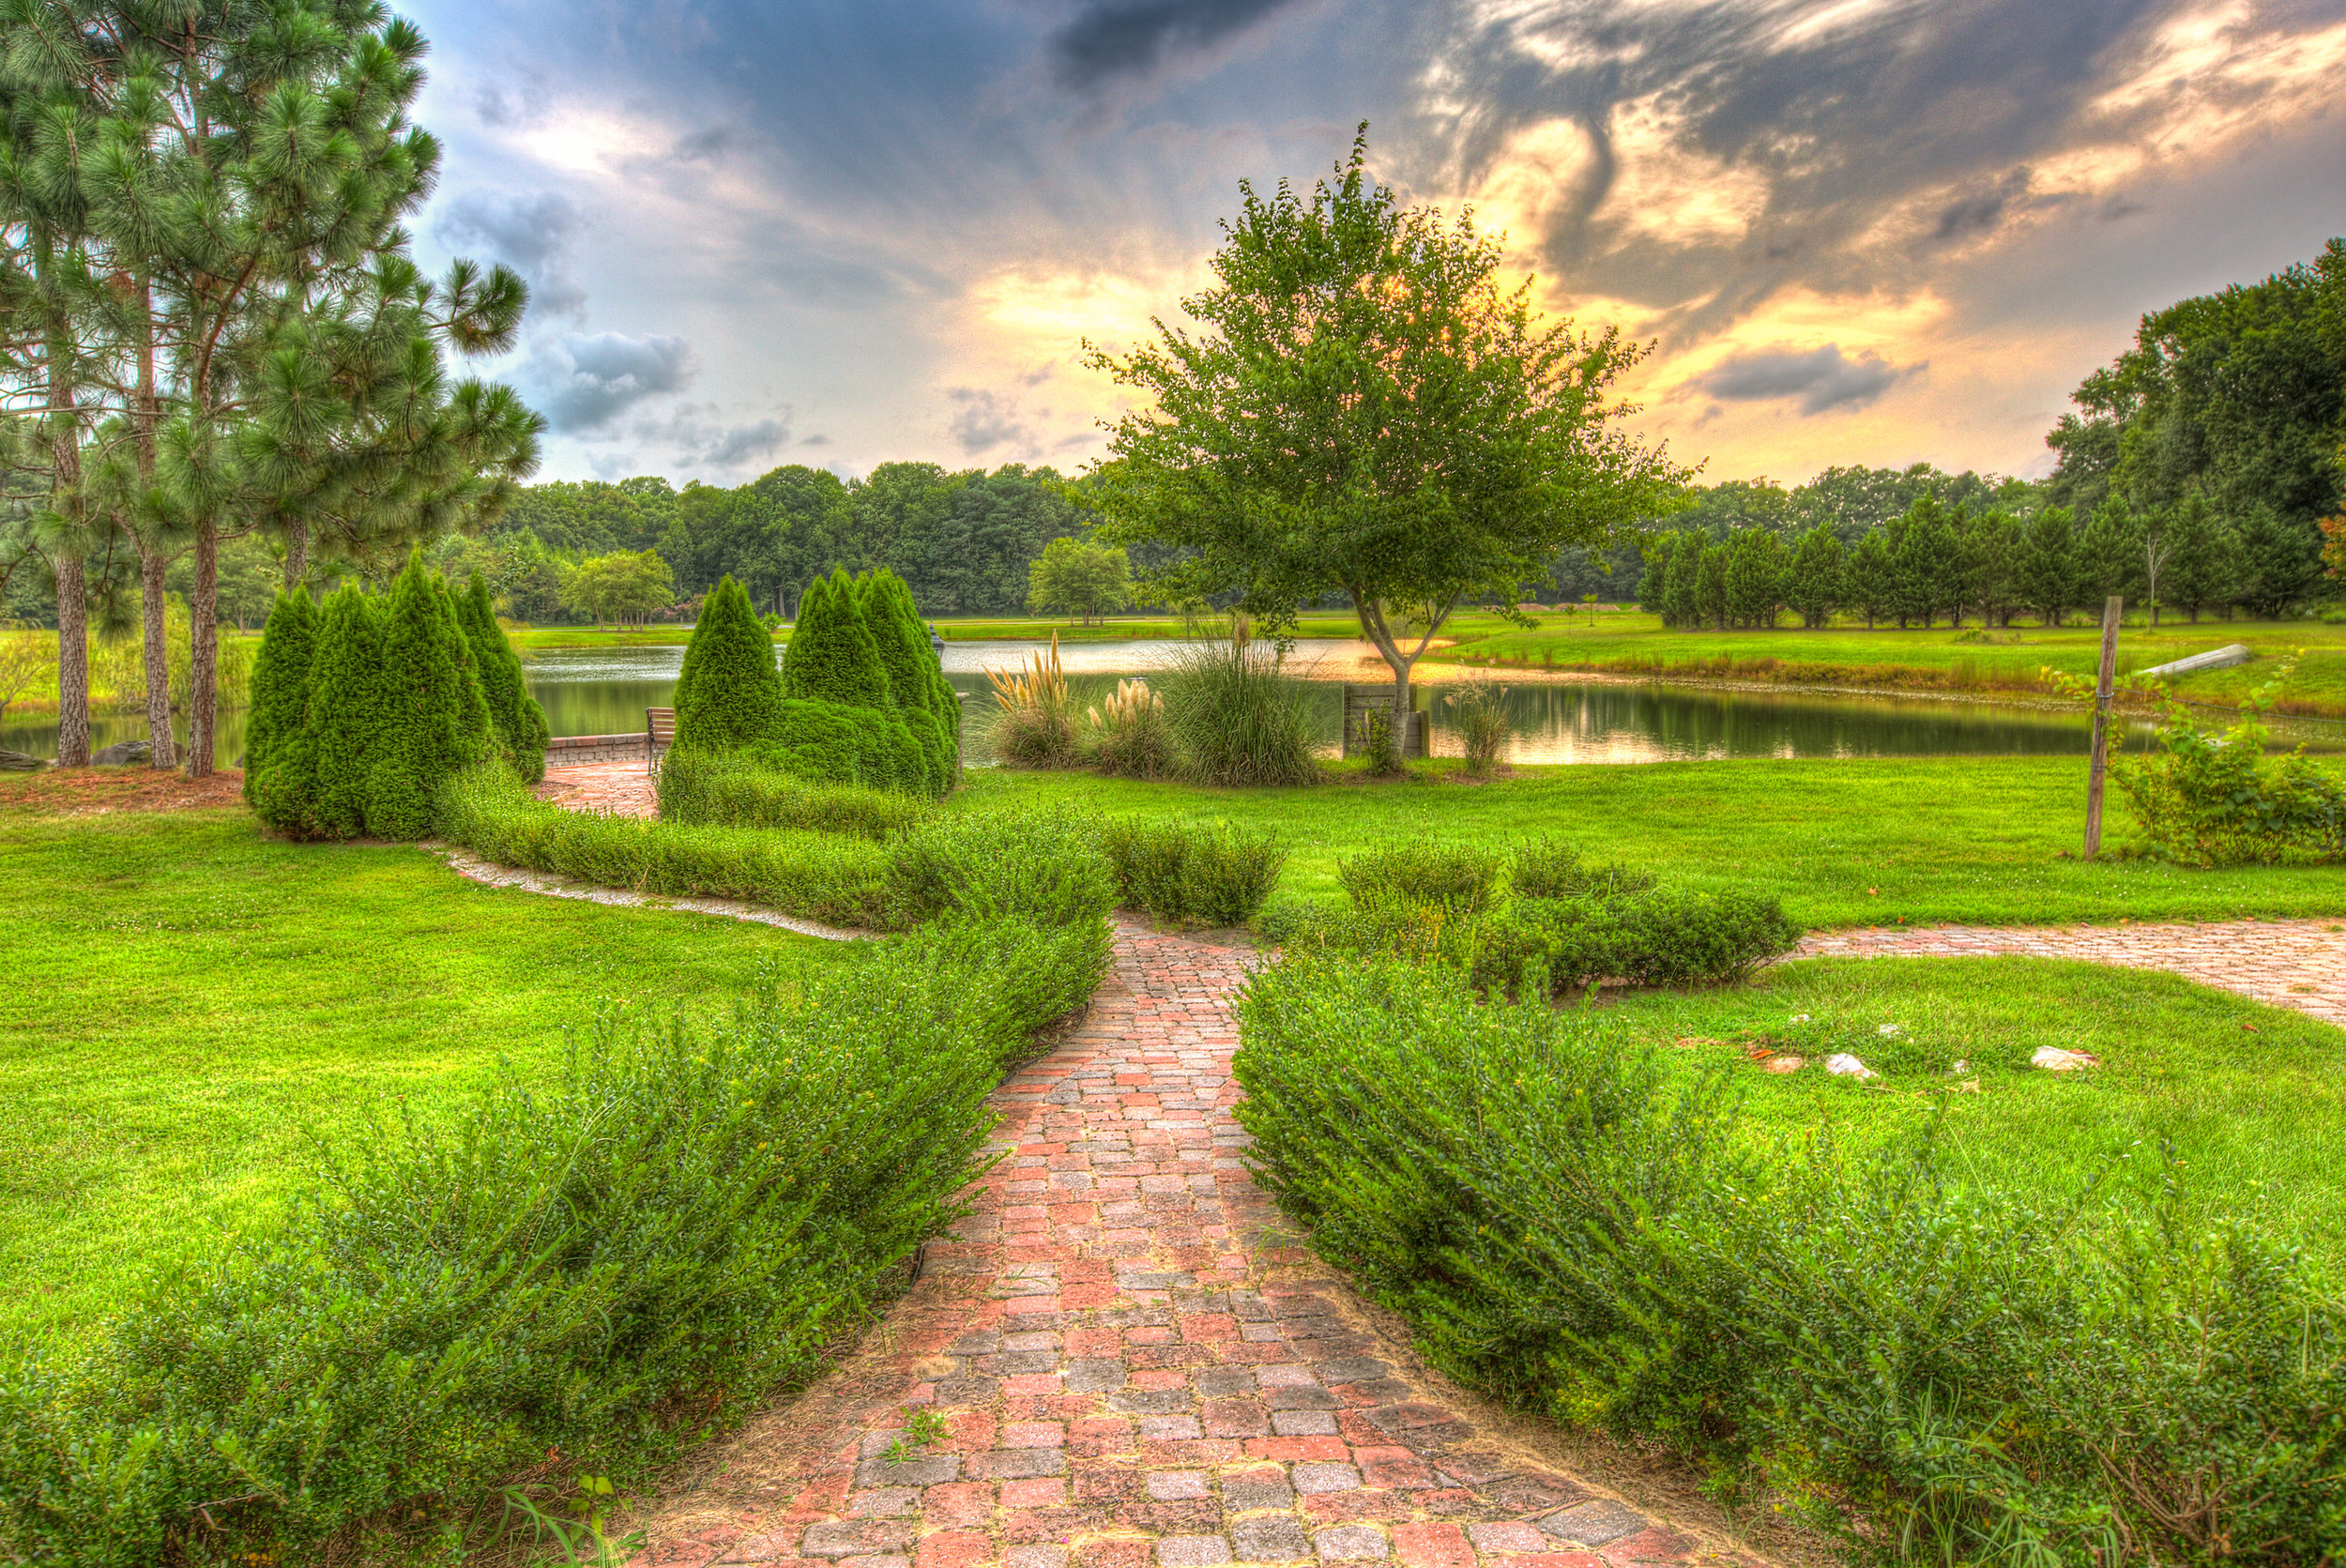 A beautiful brick path leads to the placid lake. This is just one of the gorgeous scenes for your wedding photos at Smokey Hollow barn wedding venue near the Delaware beaches.